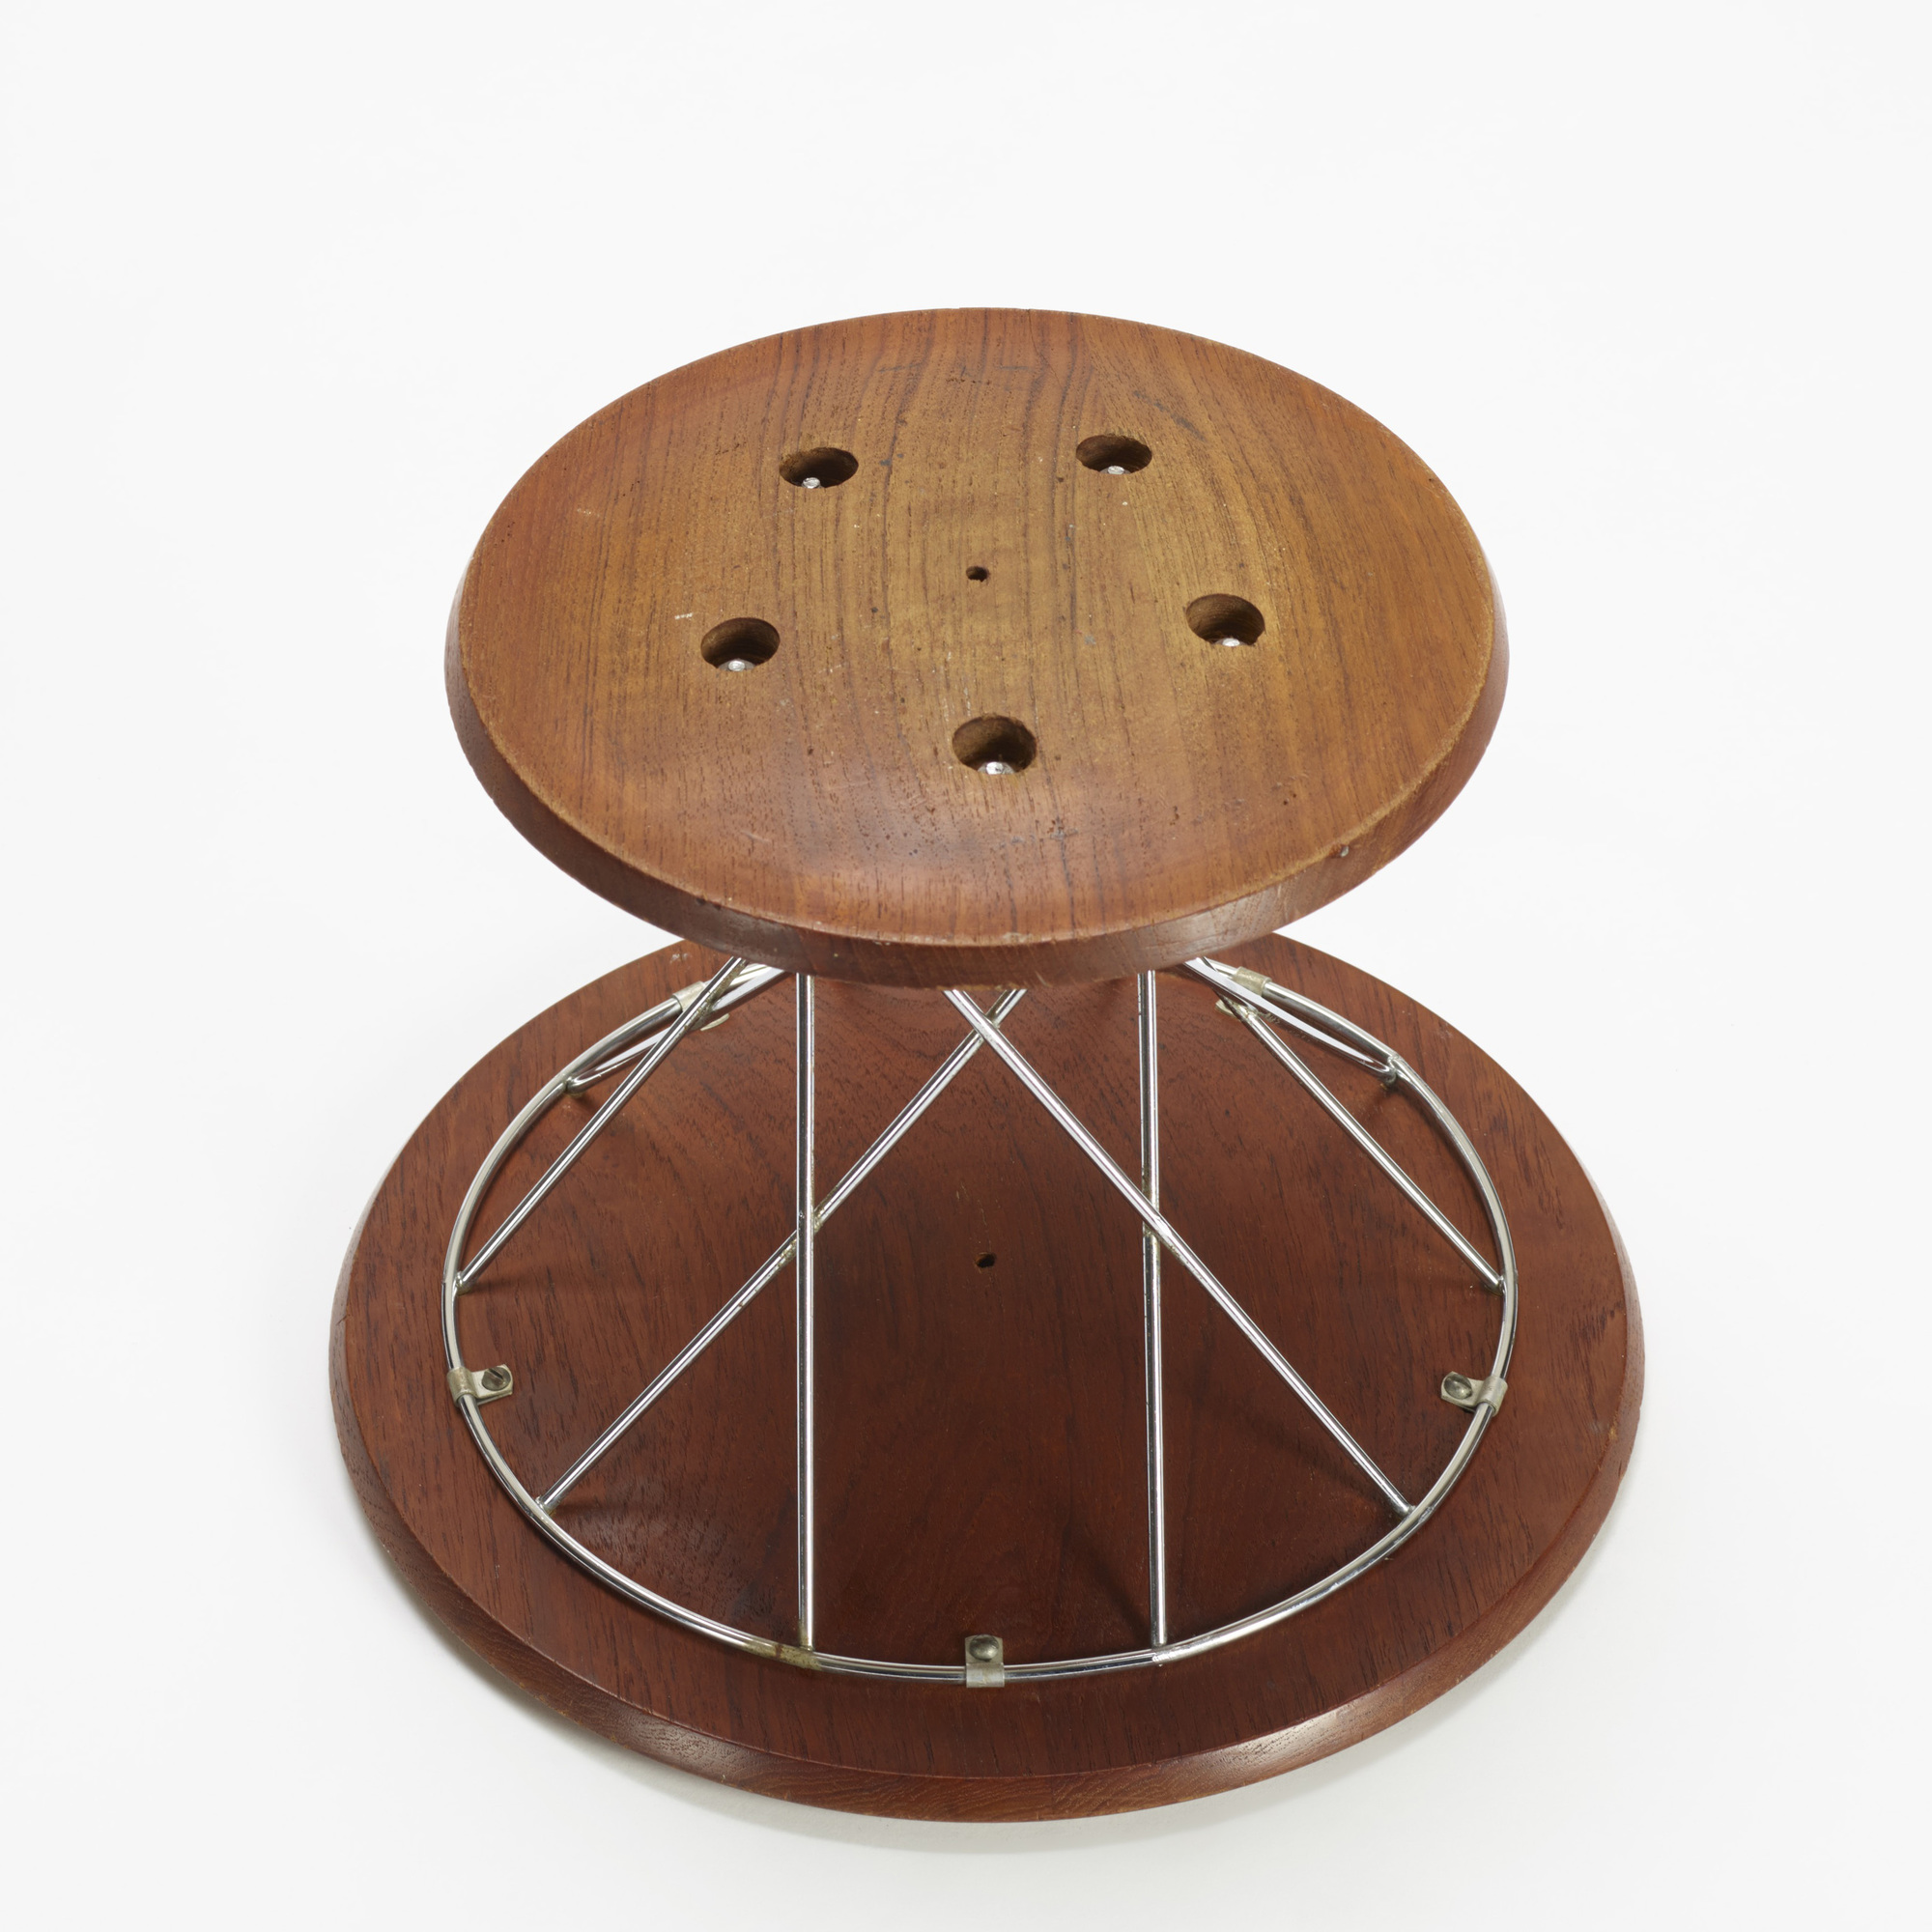 344: Isamu Noguchi / Rocking stool, model 85T (3 of 3)